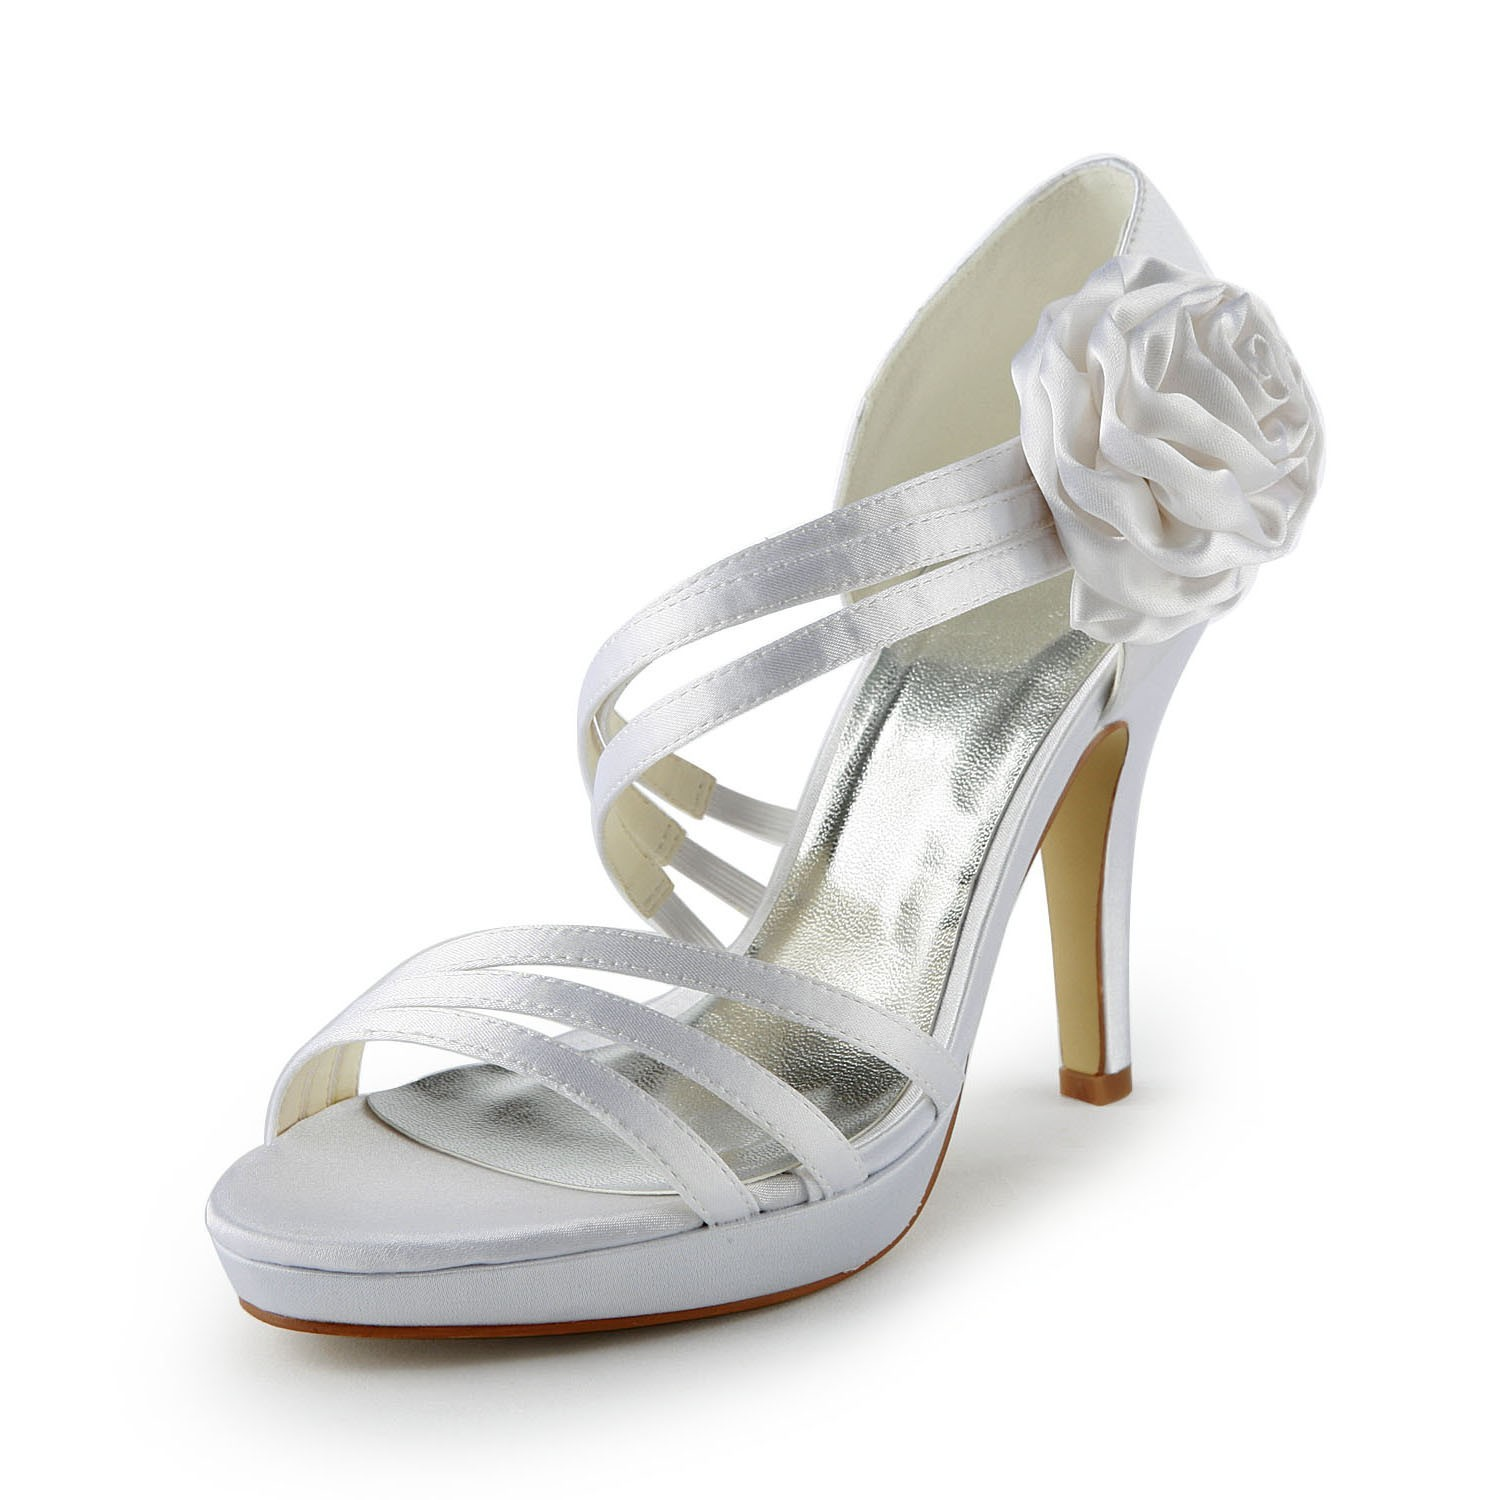 a0d407b447f The Most Fashionable Women s Satin Stiletto Heel Platform Sandals White  Wedding Shoes With Flower